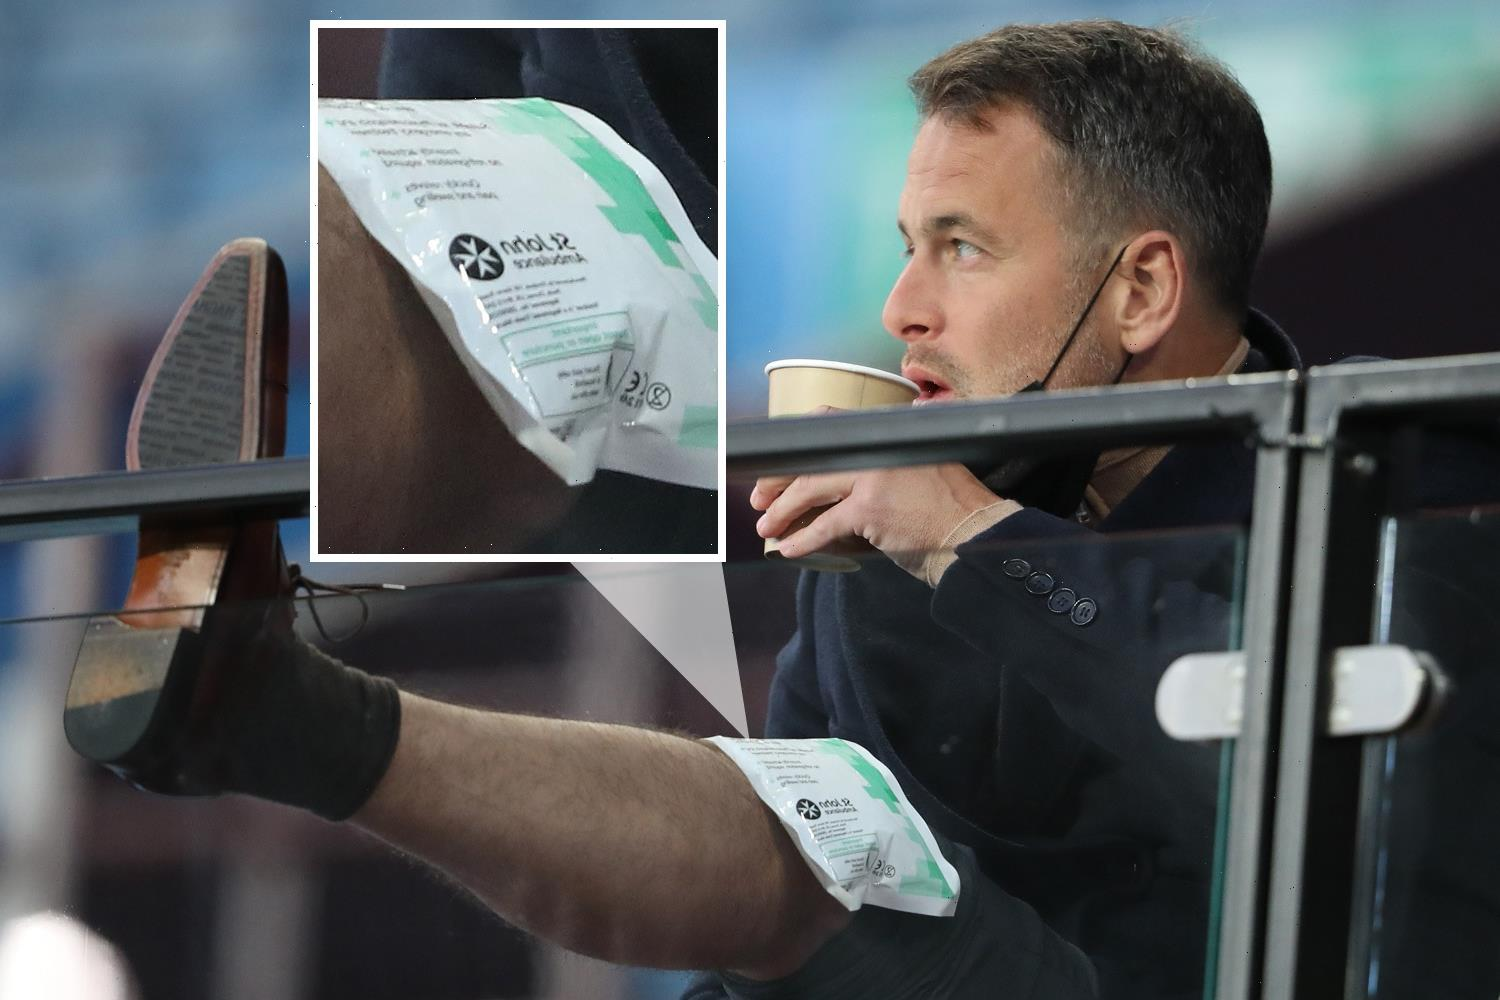 Joe Cole appears to suffer knee injury in the COMMENTARY BOX as BT Sports pundit wears ice pack on knee